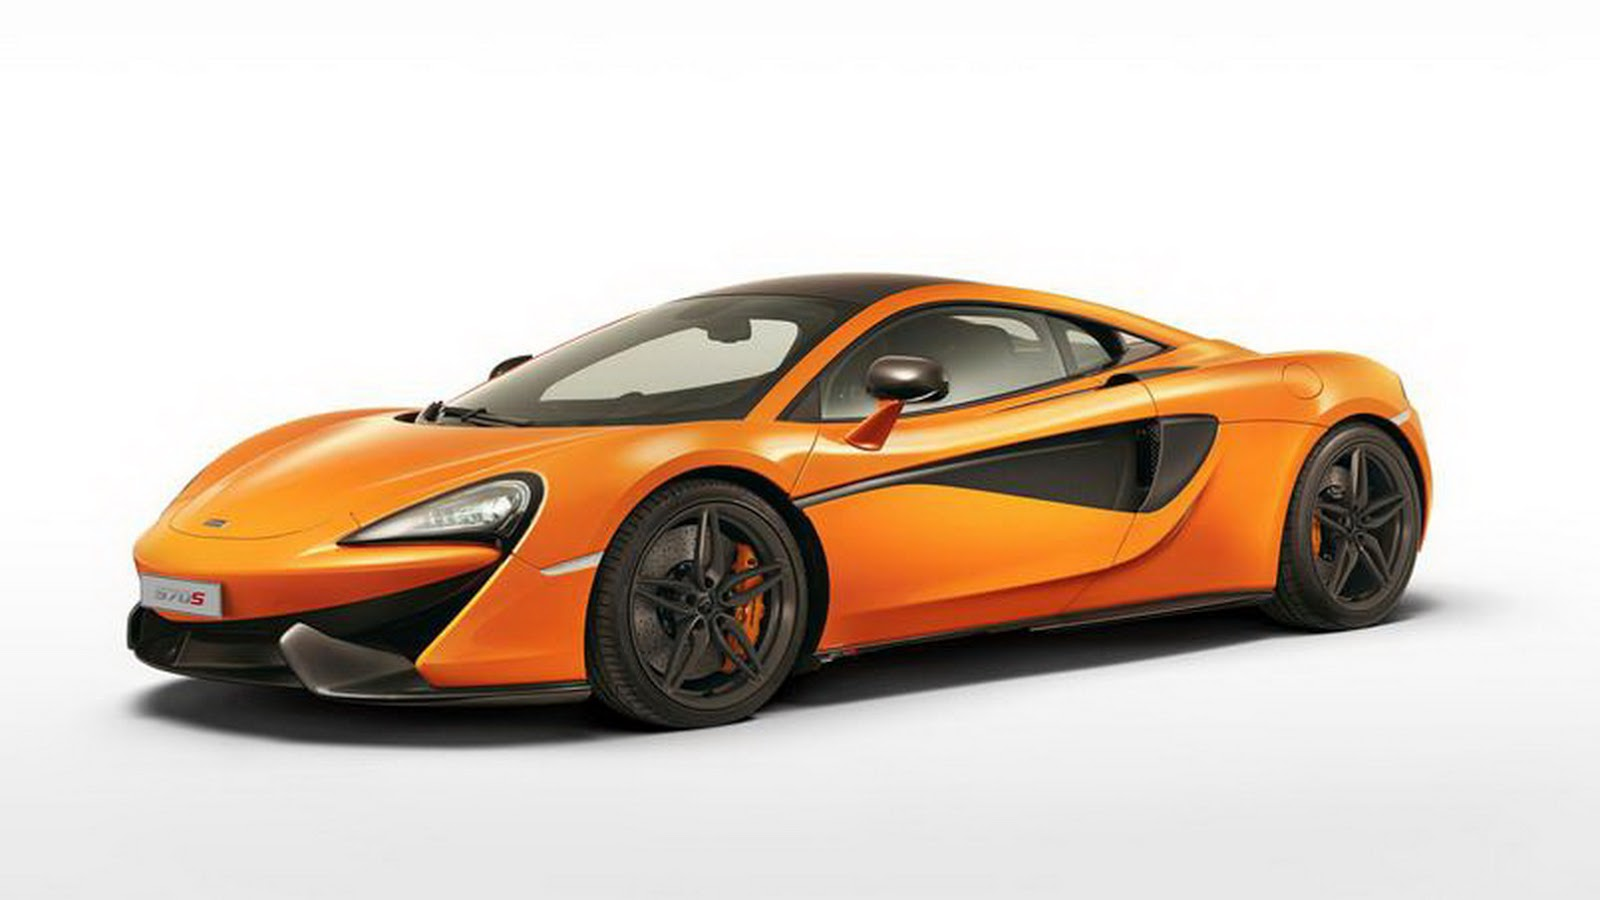 mclaren-570s-official-photo-1.jpg (1600×900)